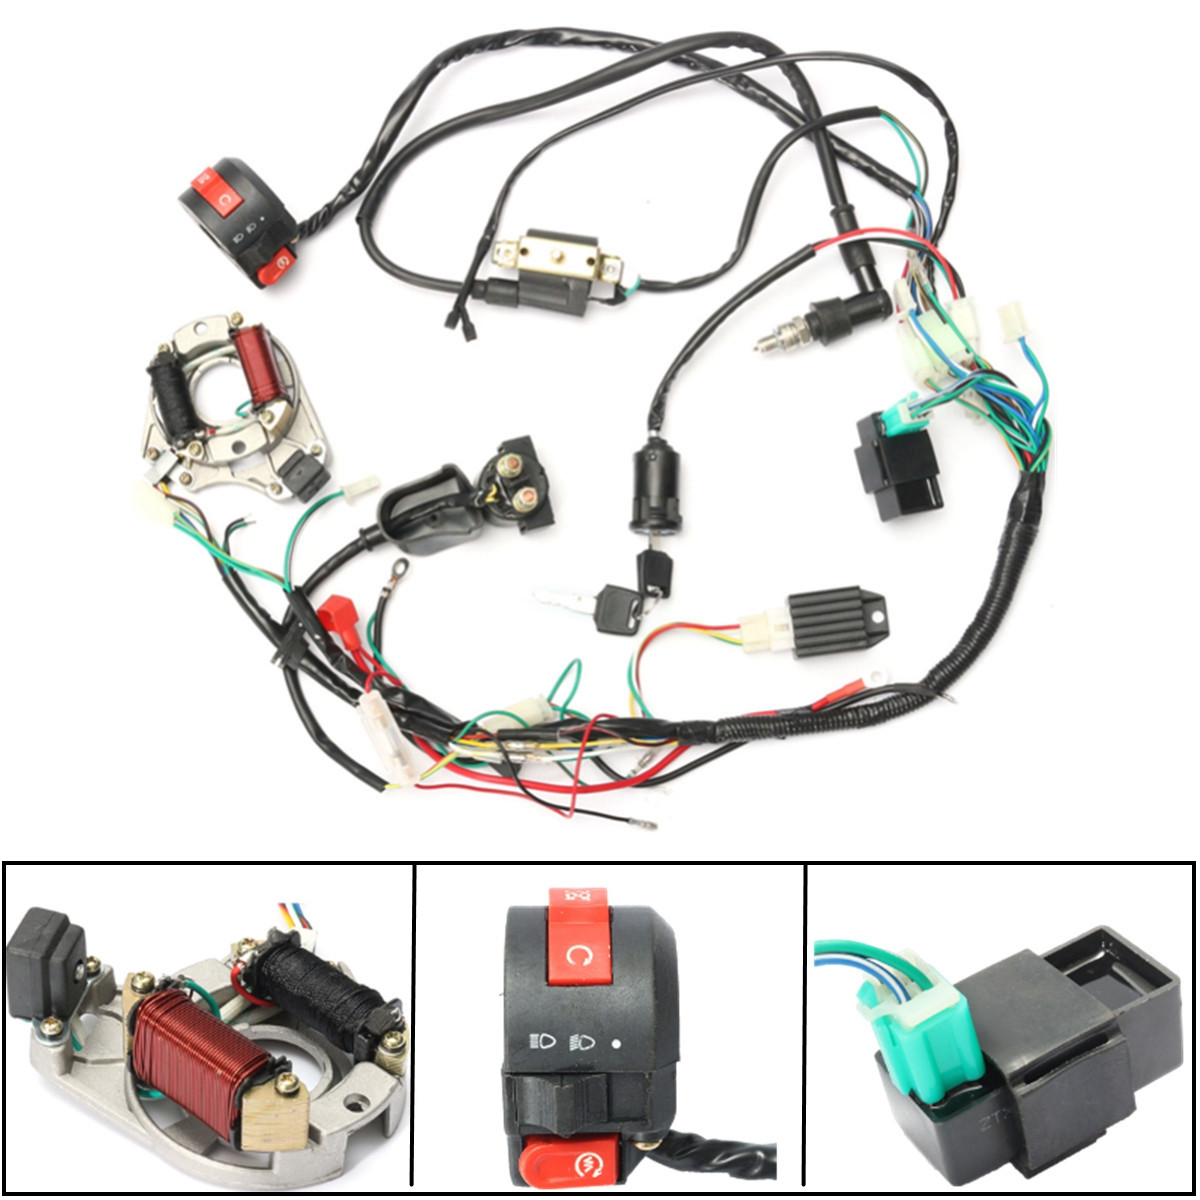 hight resolution of cdi wire harness stator assembly wiring for atv electric quad 50cc 70cc 90cc 110cc 125cc